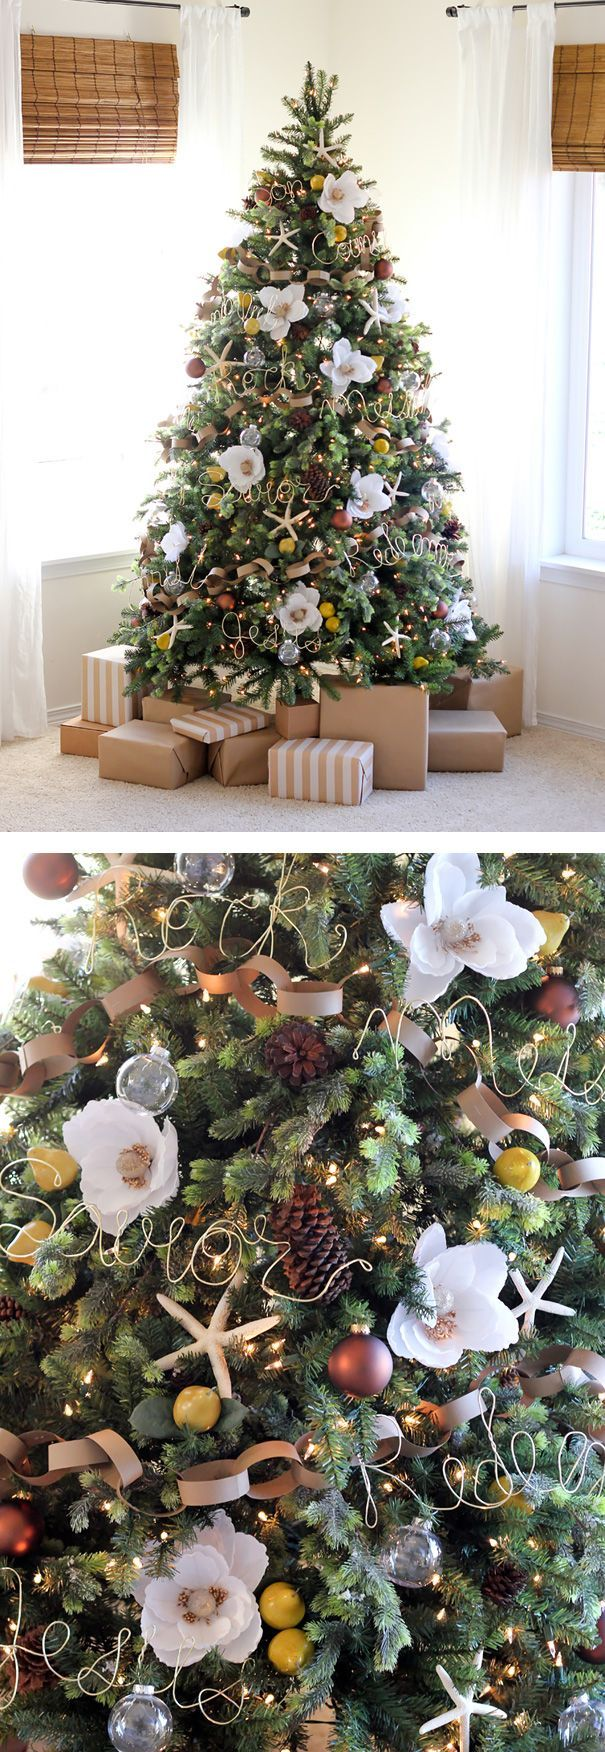 AD-Floral-Christmas-Tree-Decorating-Ideas-06.jpg (605×1752)